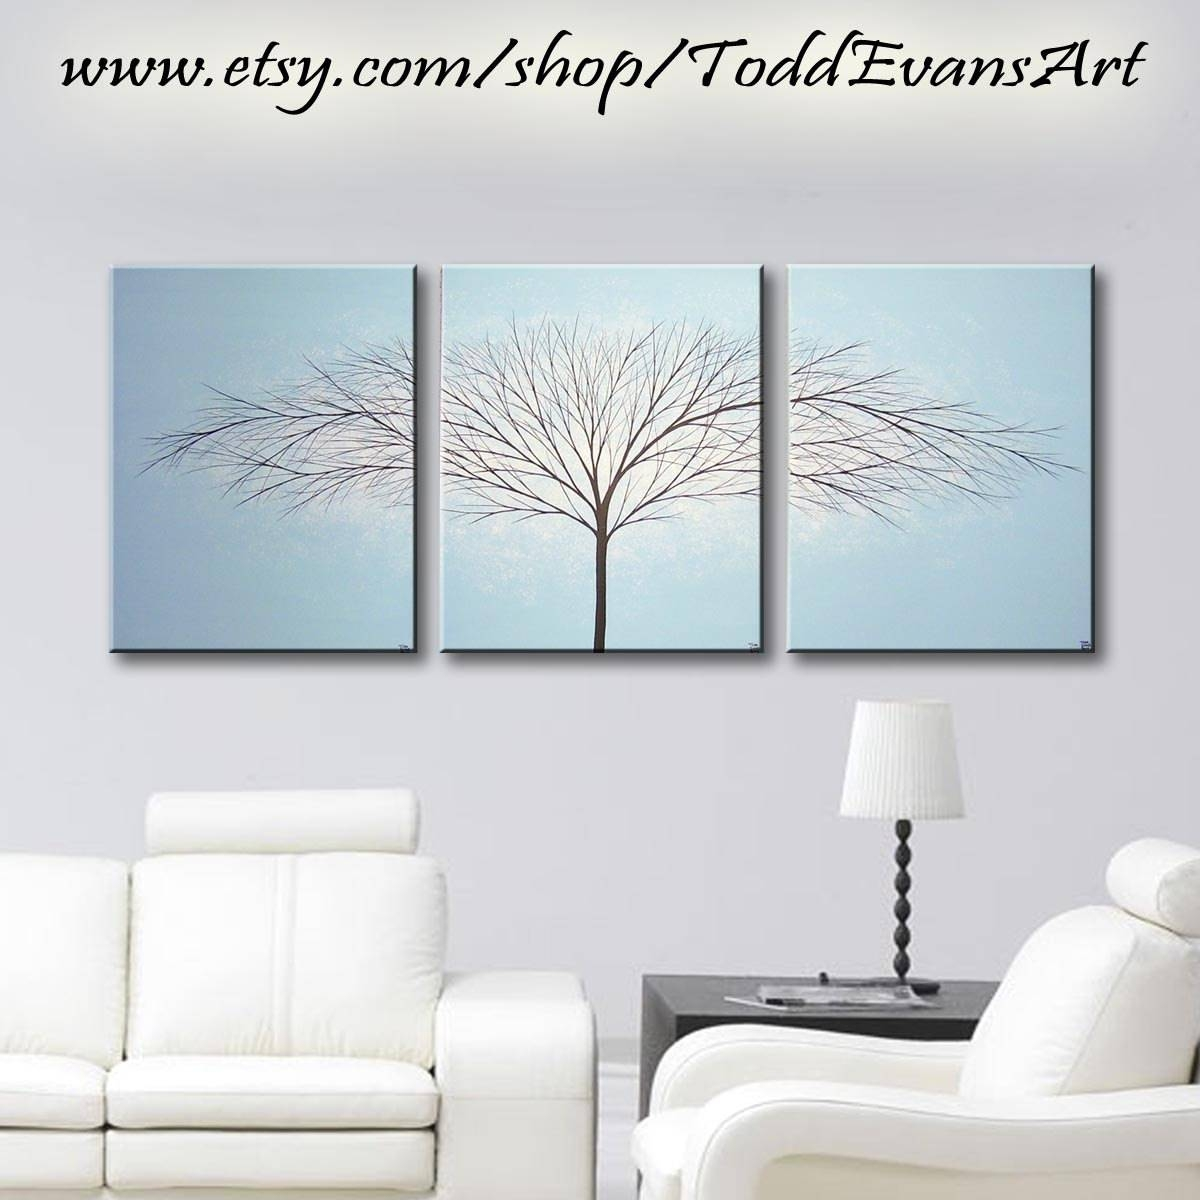 Tree Painting 3 Piece Wall Art Large Canvas Art Painting Throughout Latest Three Piece Wall Art Sets (View 11 of 15)